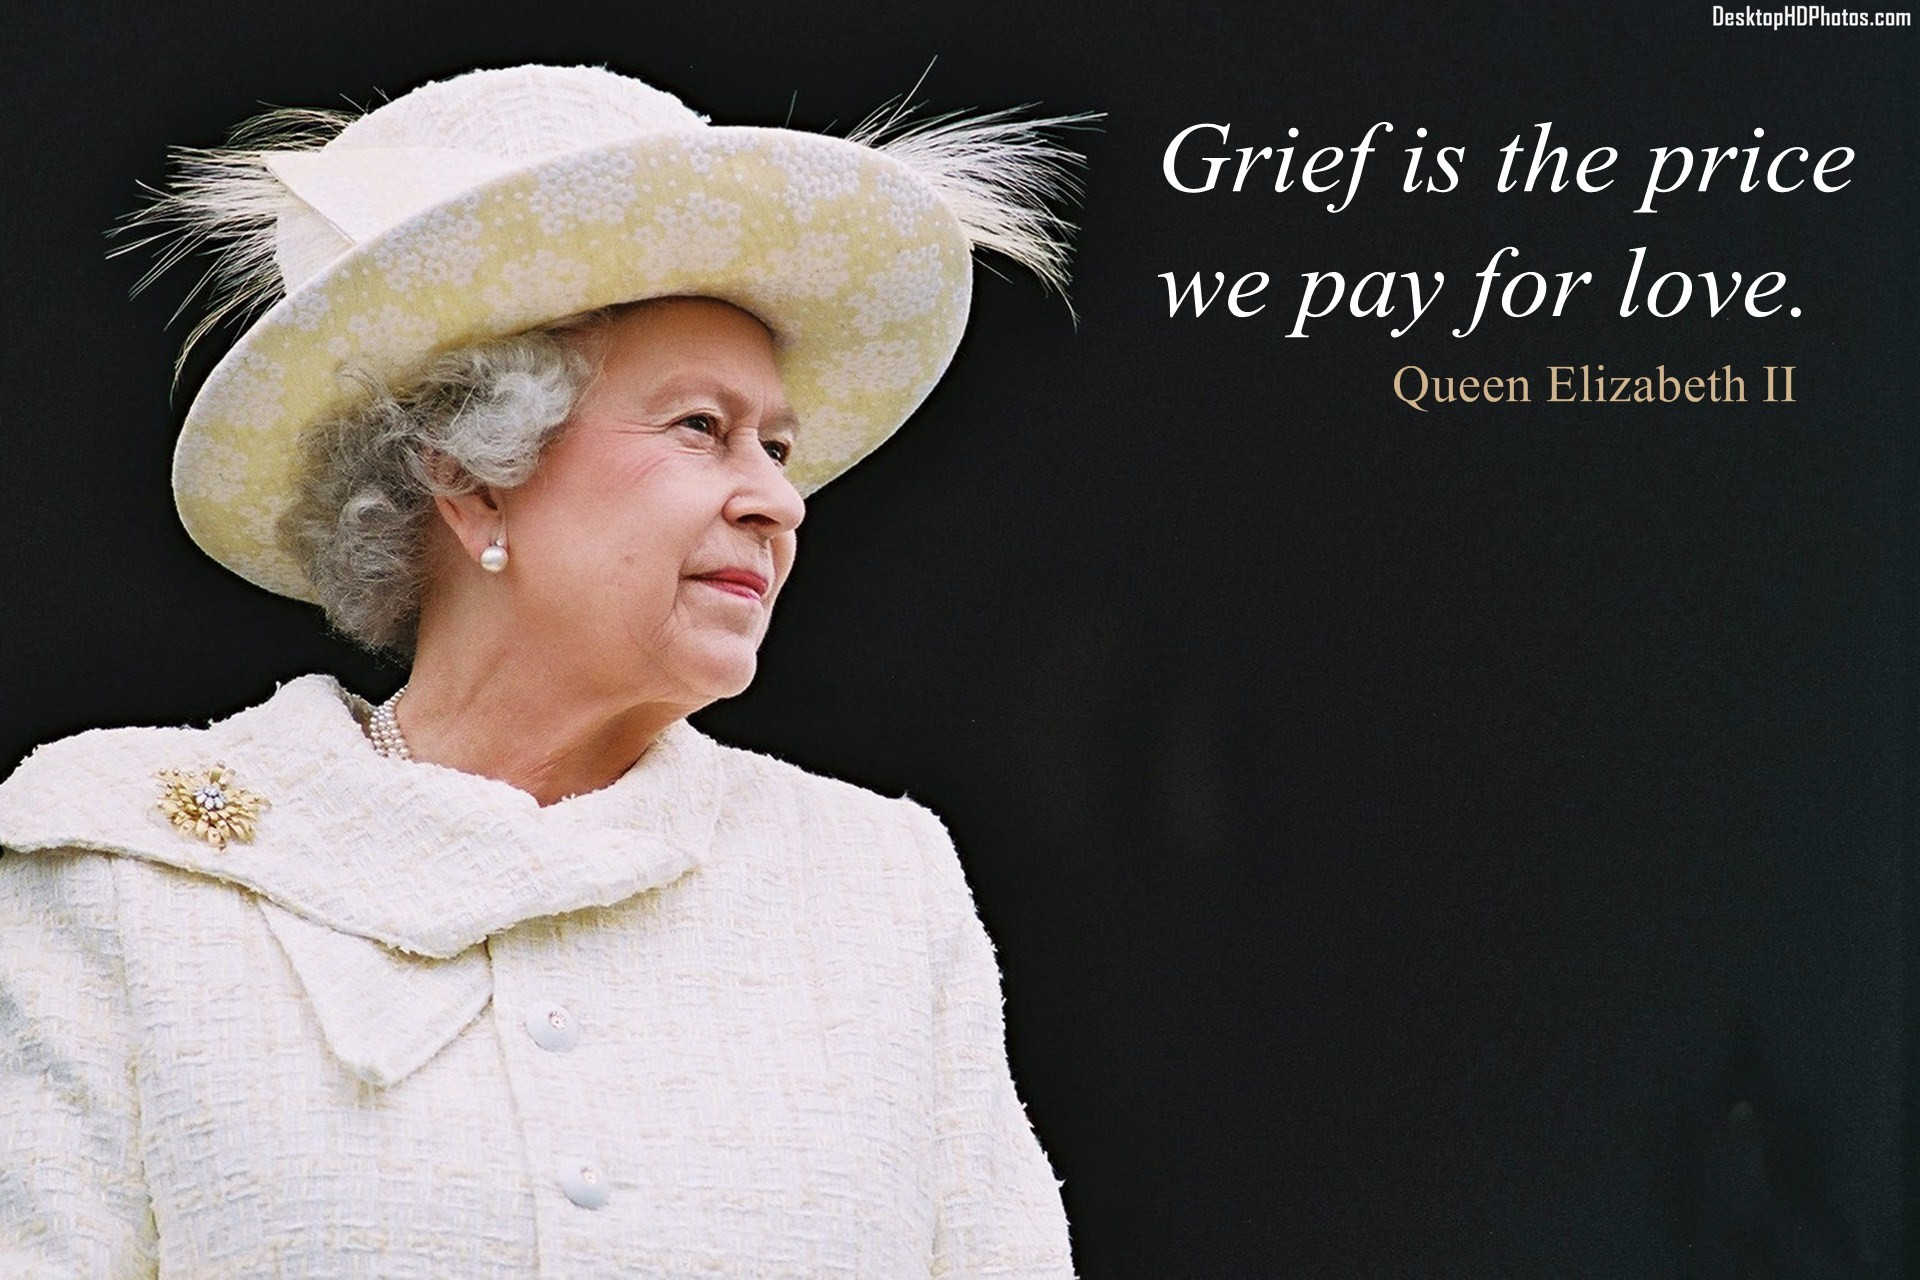 Queen Elizabeth Ii Quotes Grief Is The Price We Pay For Love